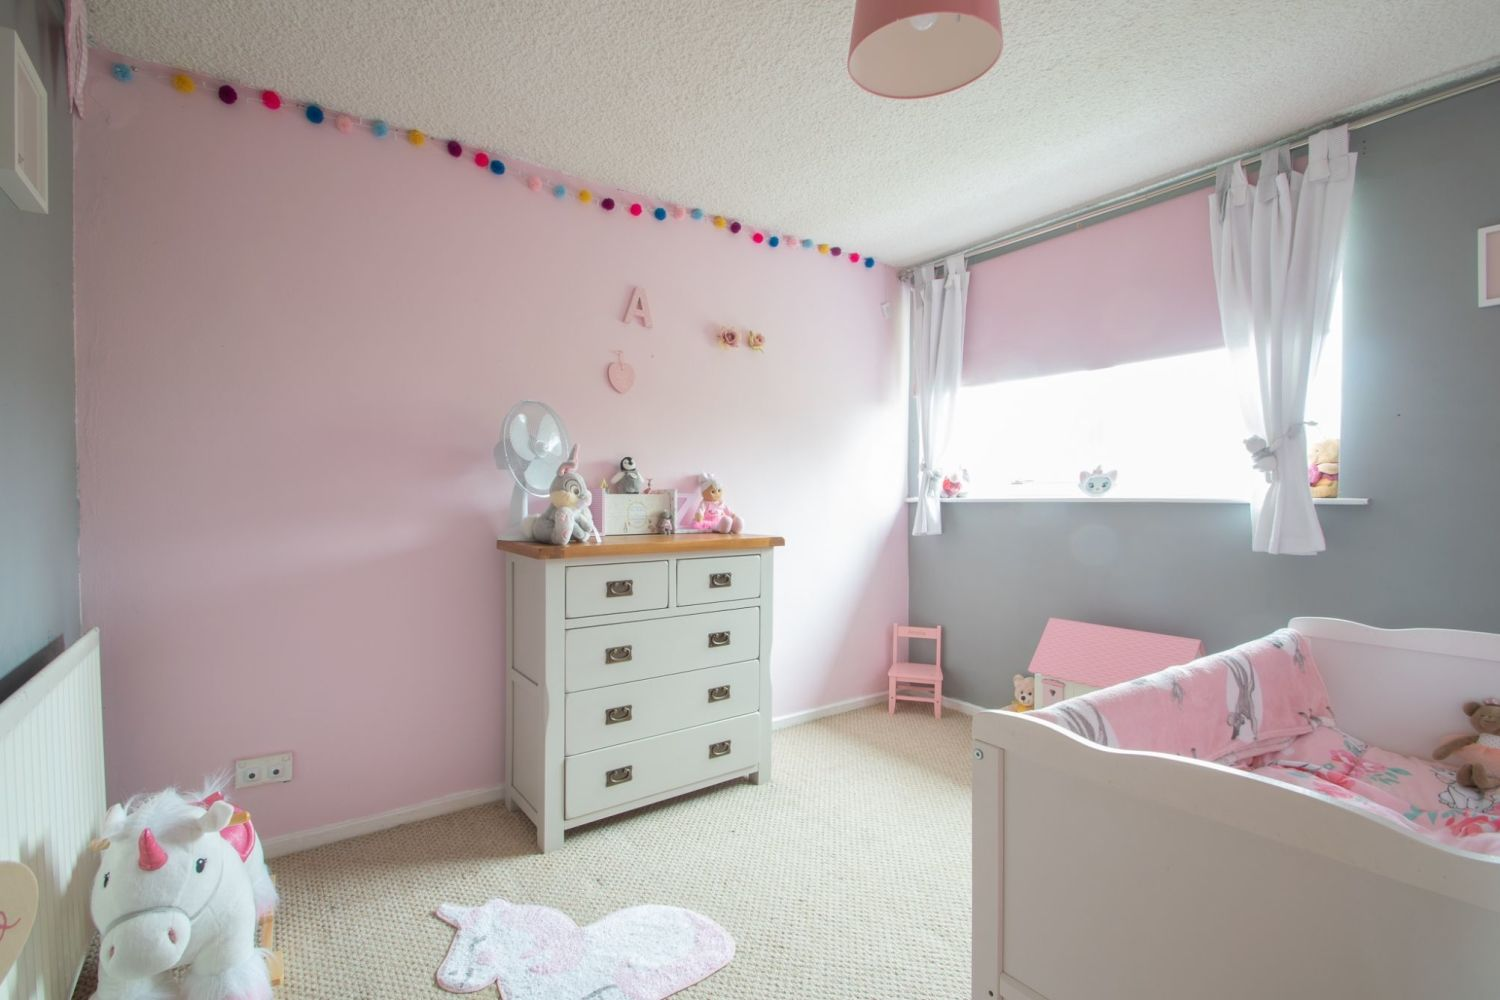 3 bed terraced for sale in Westcombe Grove, Birmingham  - Property Image 12